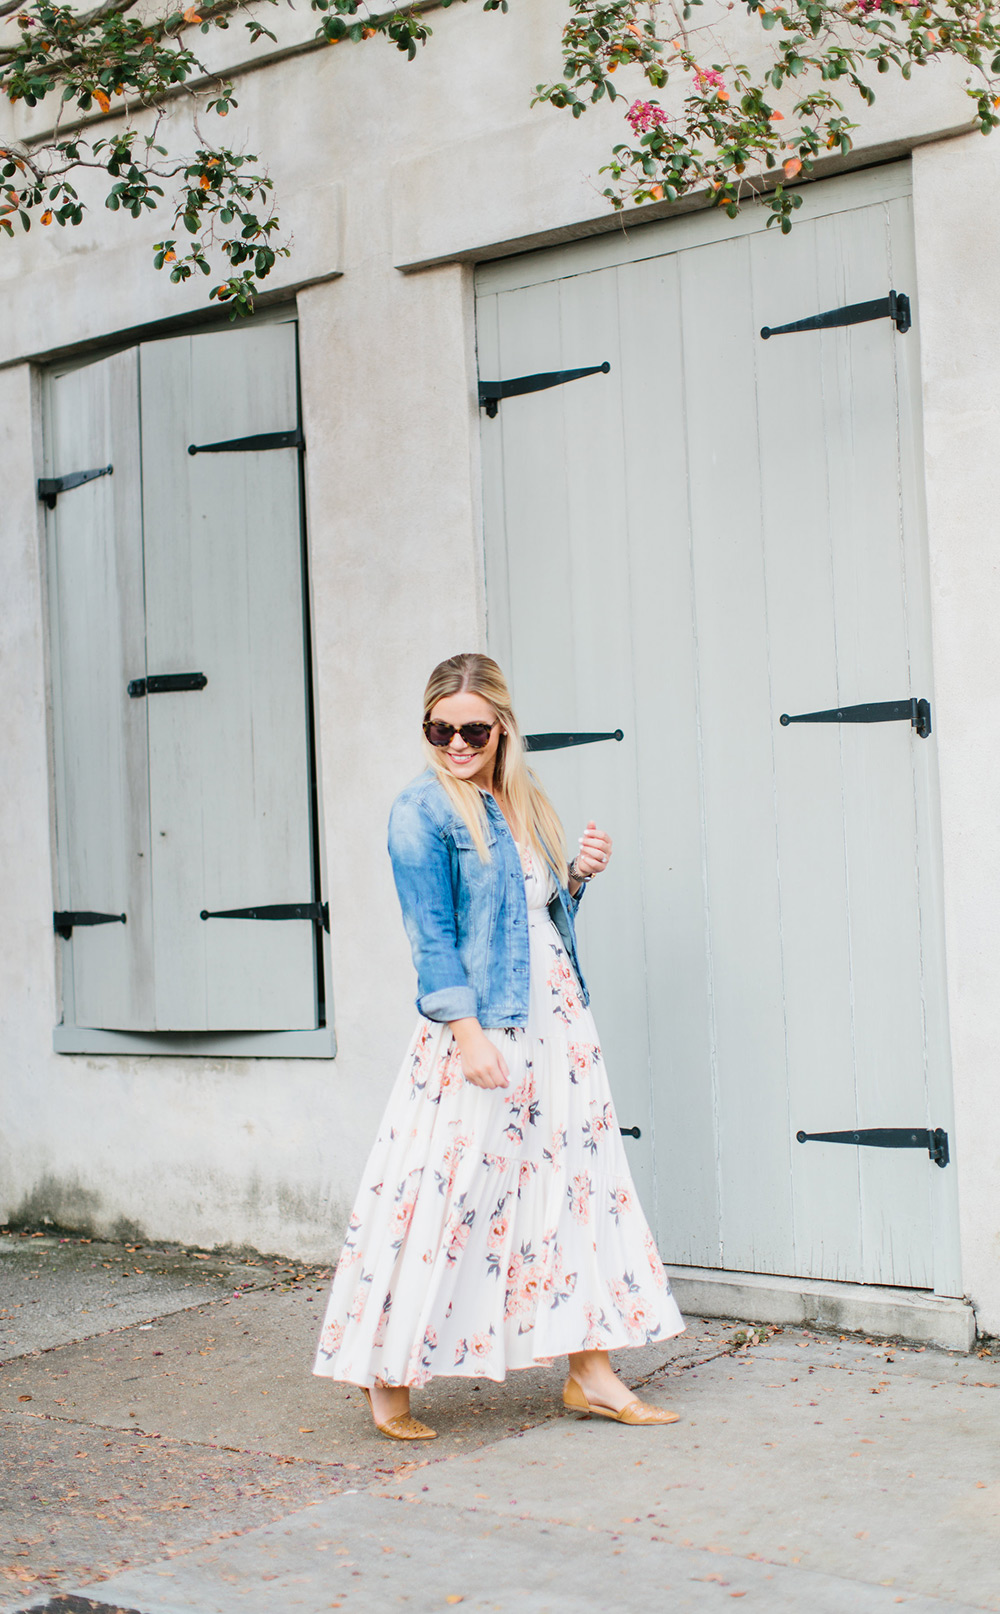 Summer Dress Transitioned to Fall with Denim Jacket